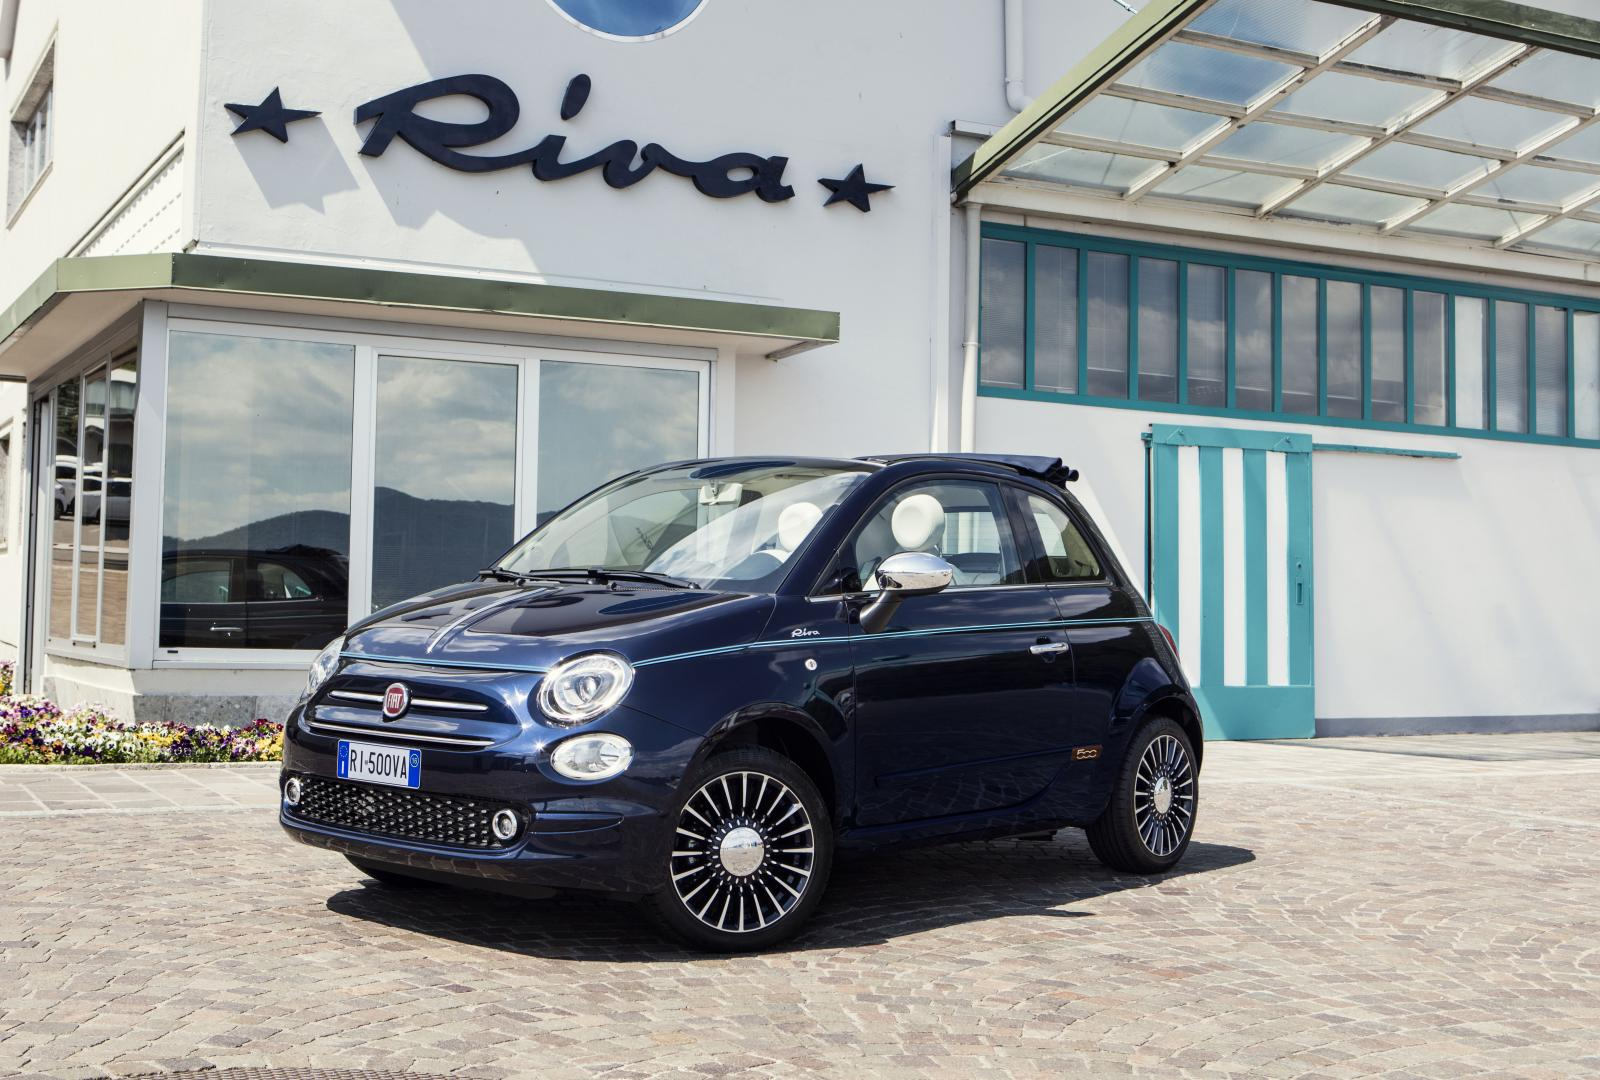 fiat 500 riva meert aan dit zijn de details. Black Bedroom Furniture Sets. Home Design Ideas